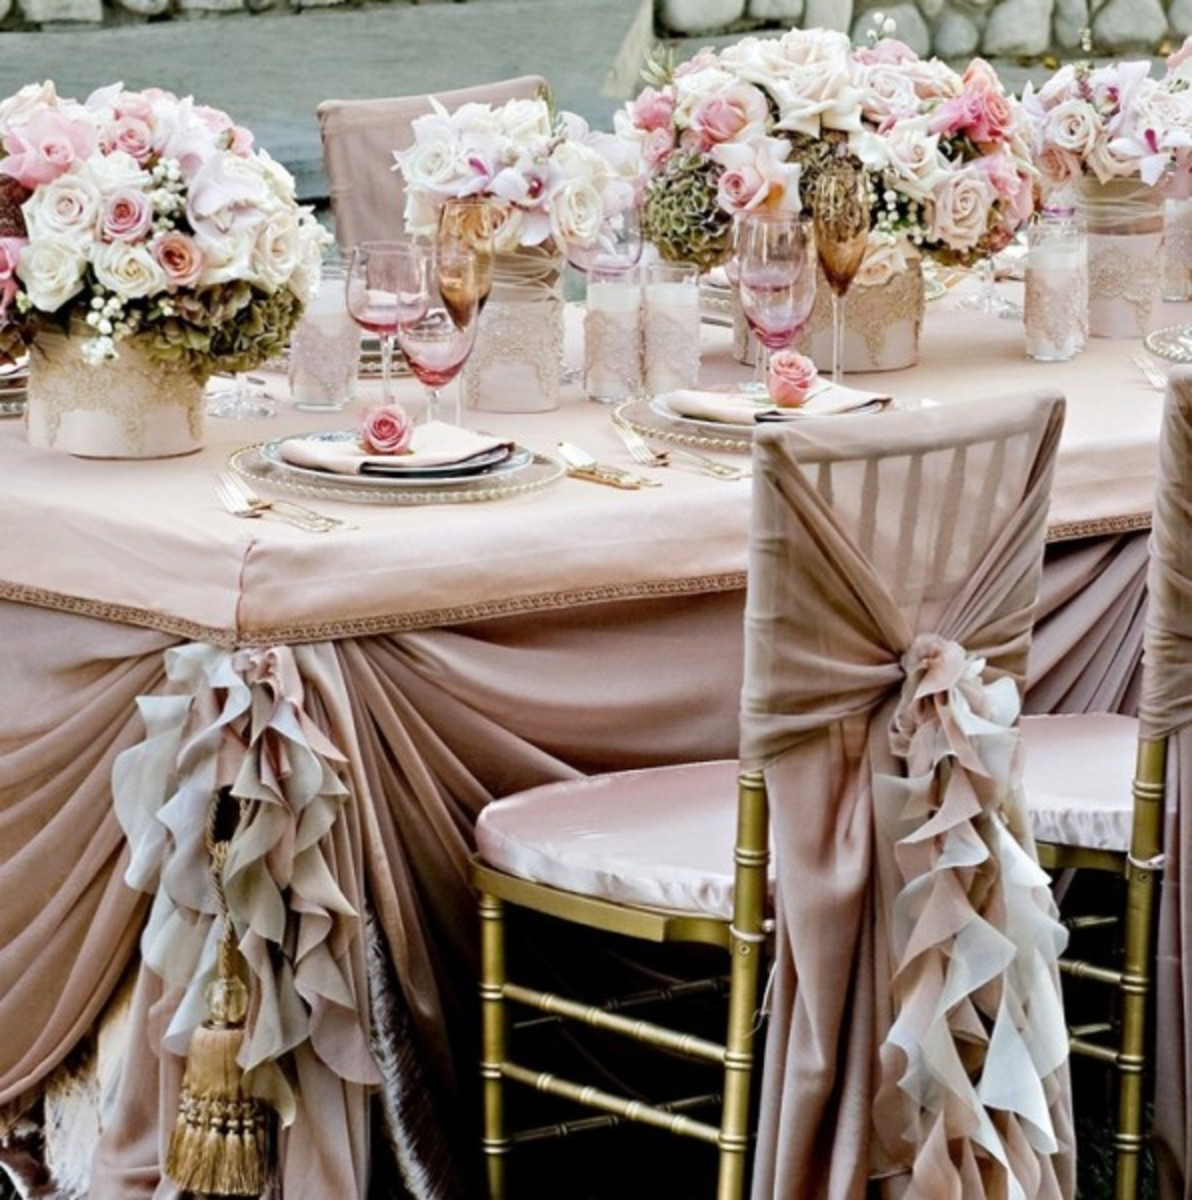 classy and sophisticated wedding table Décor